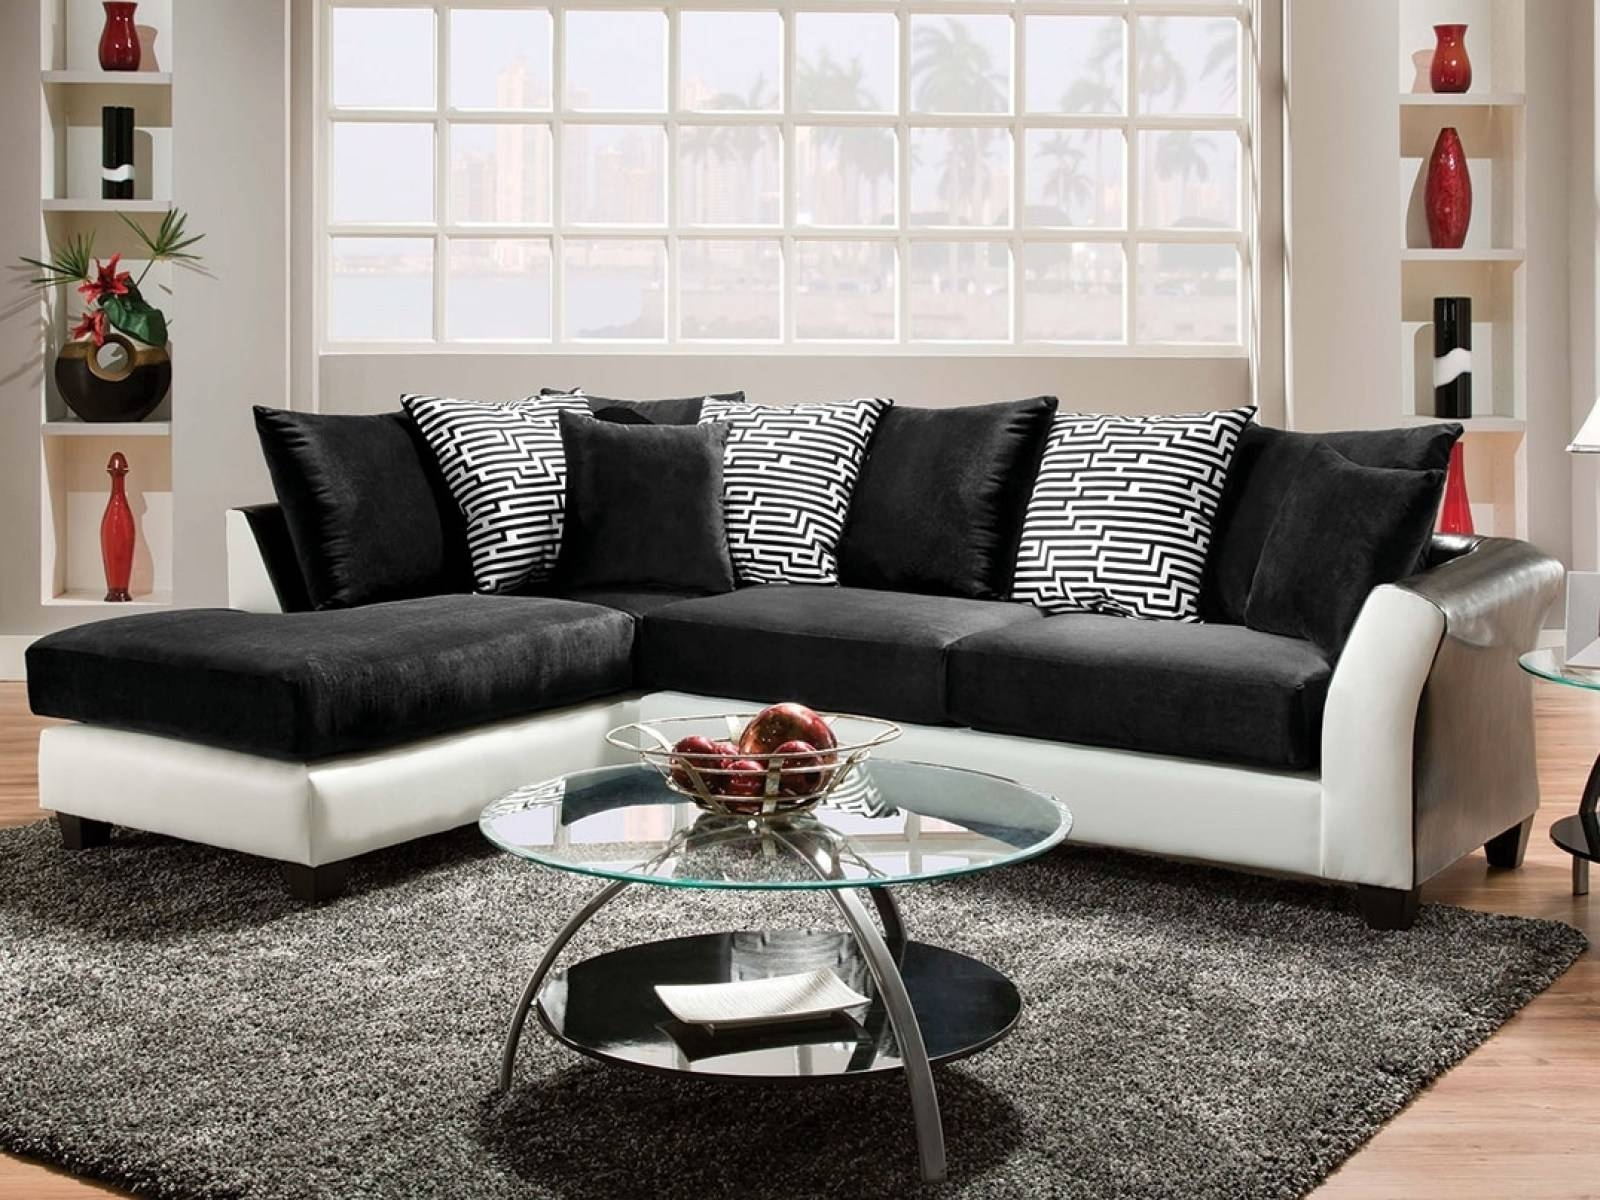 ☆▻ Sofa : 28 3032C2 Inside 89 Wonderful Black And White Sofa Set pertaining to Black And White Sofas (Image 30 of 30)